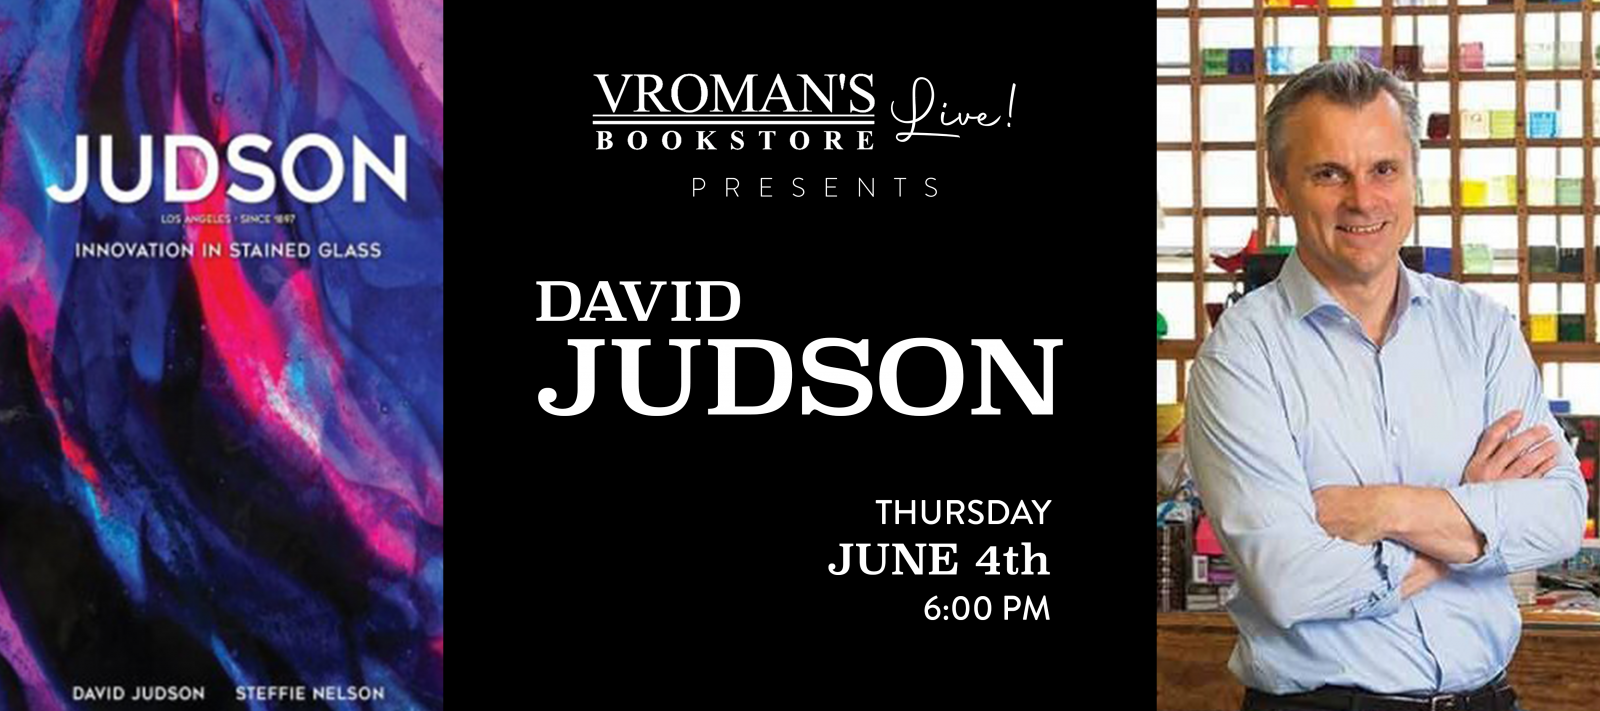 Vroman's Live presents David Judson on Thursday June 4th at 6pm